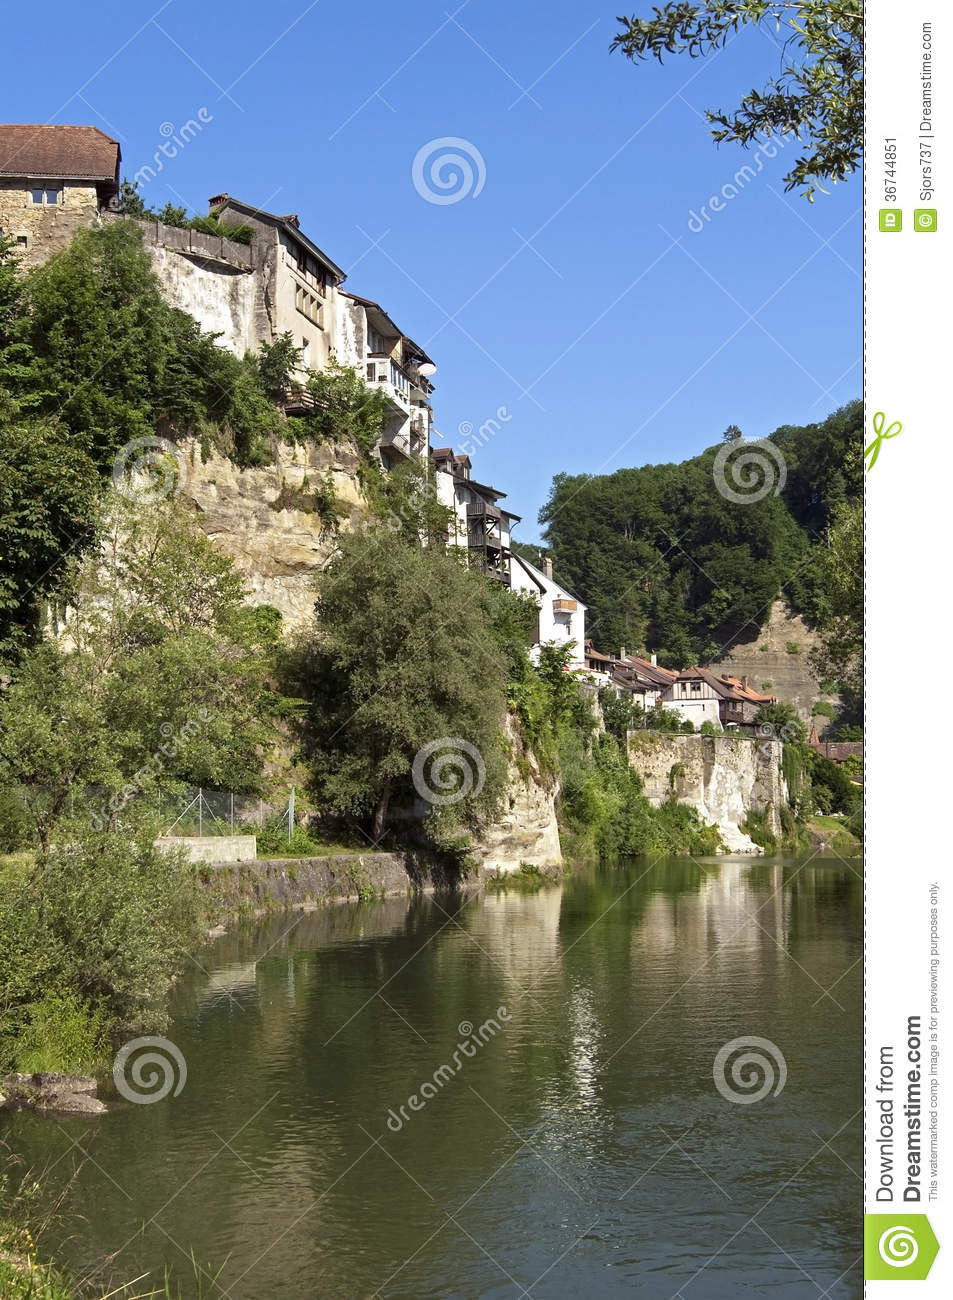 Skyline Of Swiss City Fribourg And Town Wall Stock Image - Image of ...